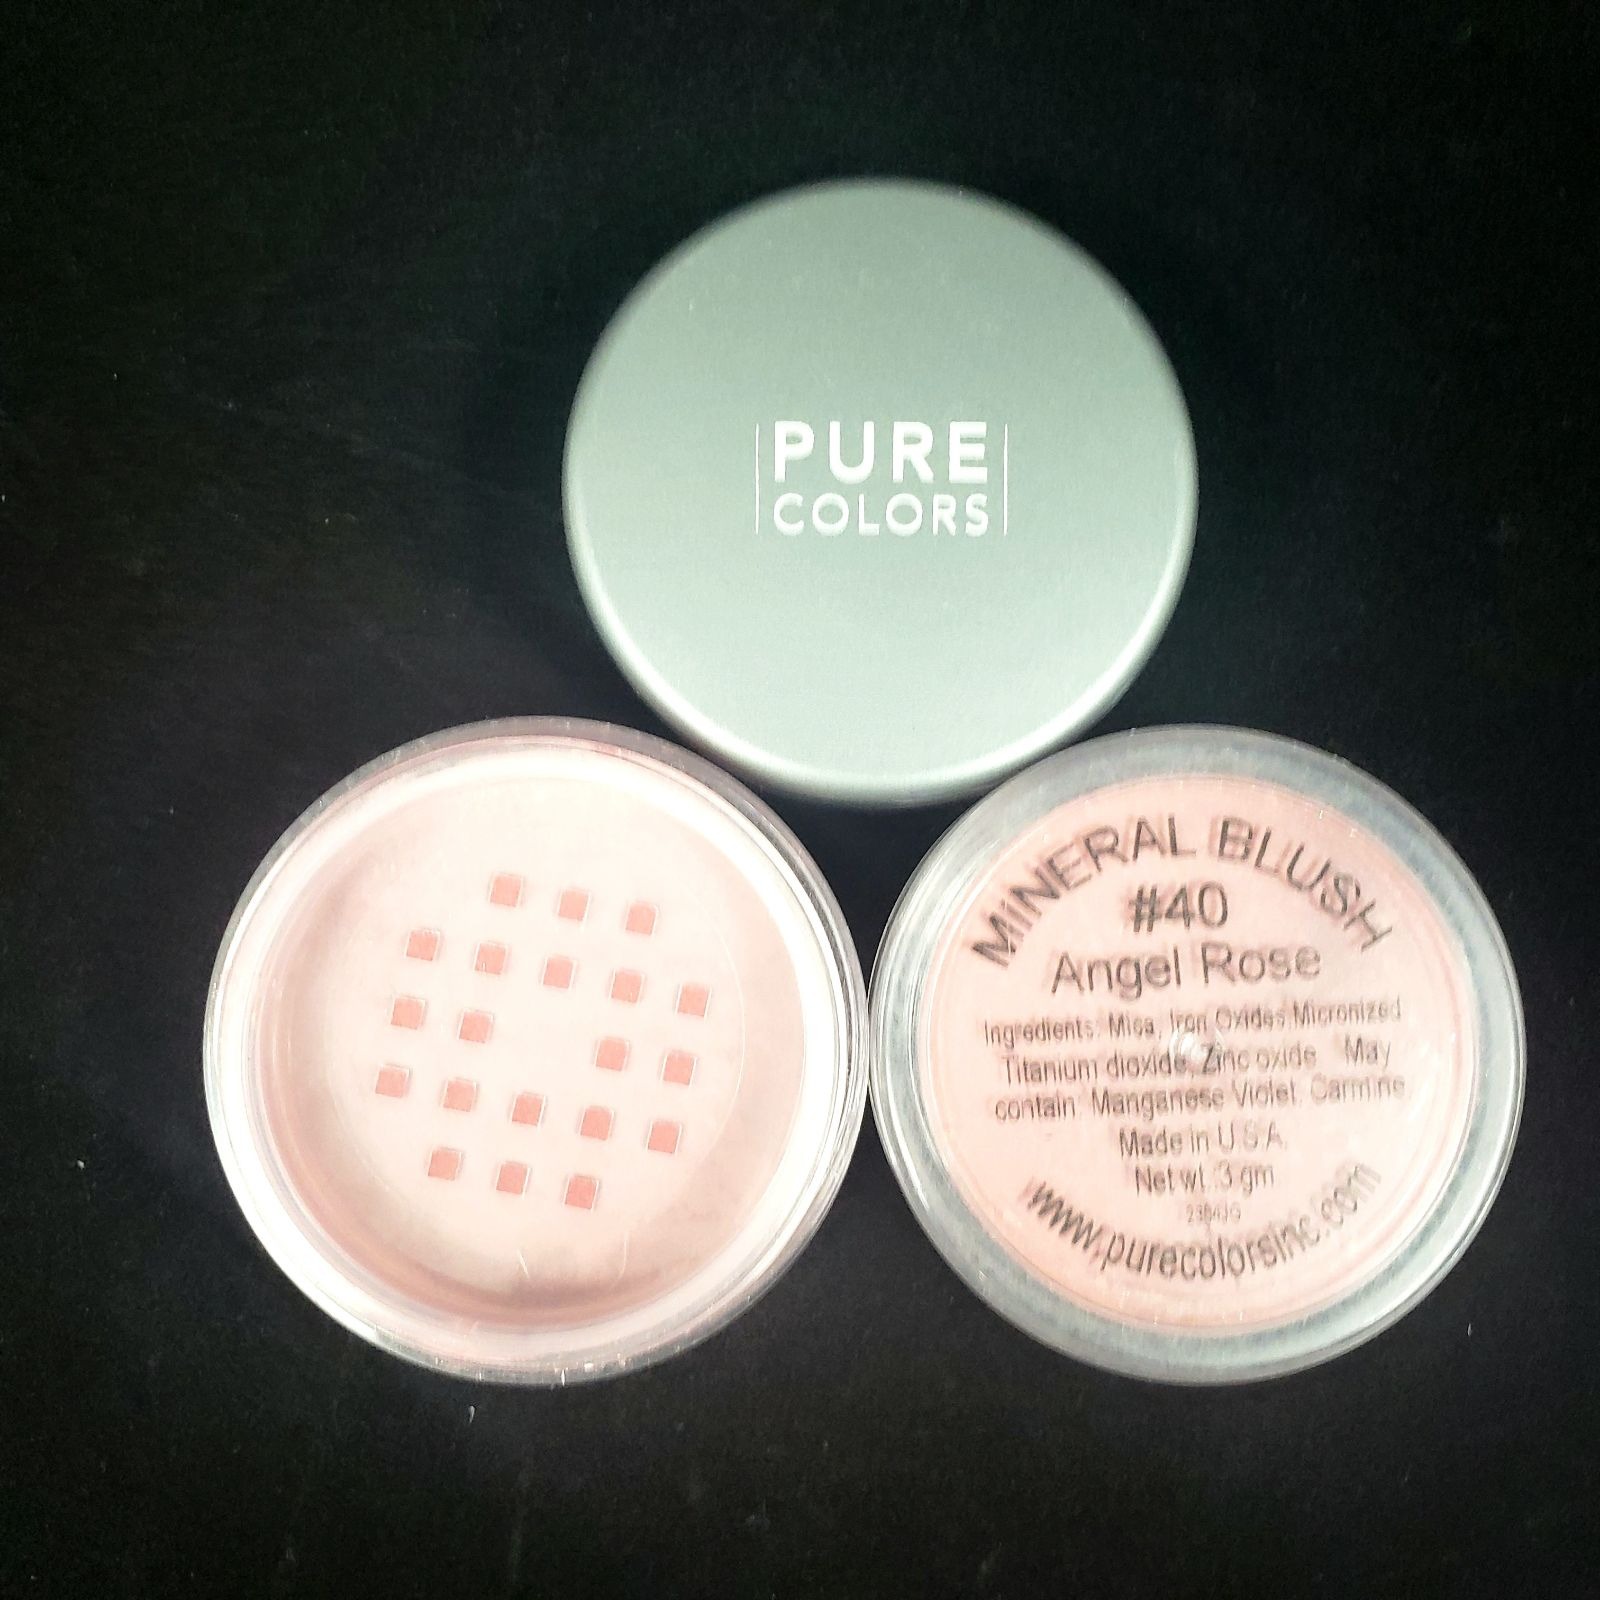 Pure Color #40 Angel Rose Mineral Blush